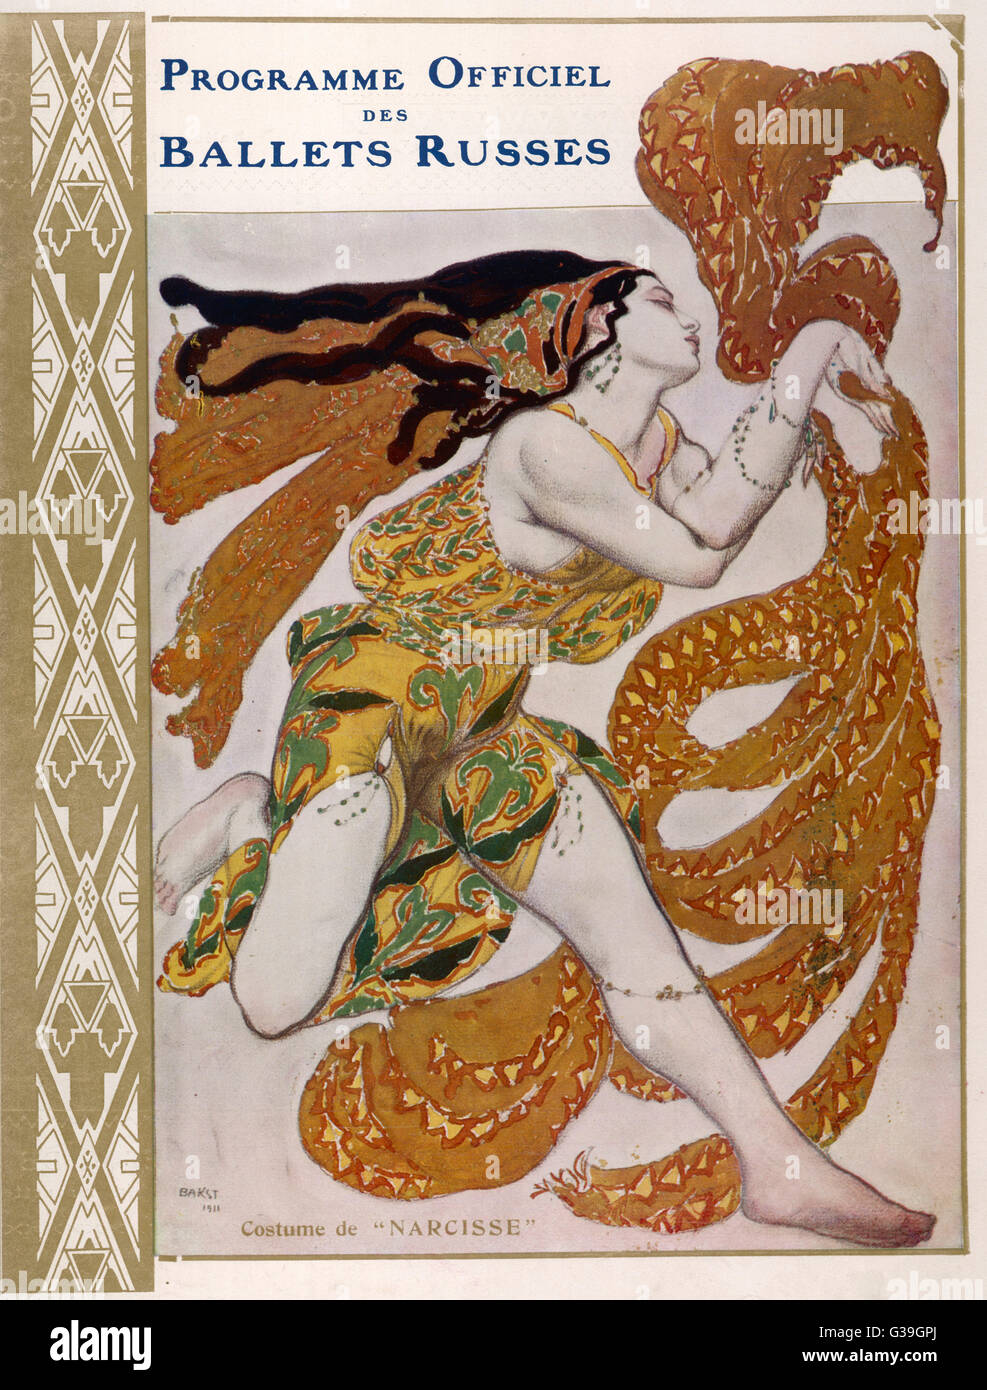 NARCISSE Cover for the offical  programme of Narcisse       Date: 1911 - Stock Image